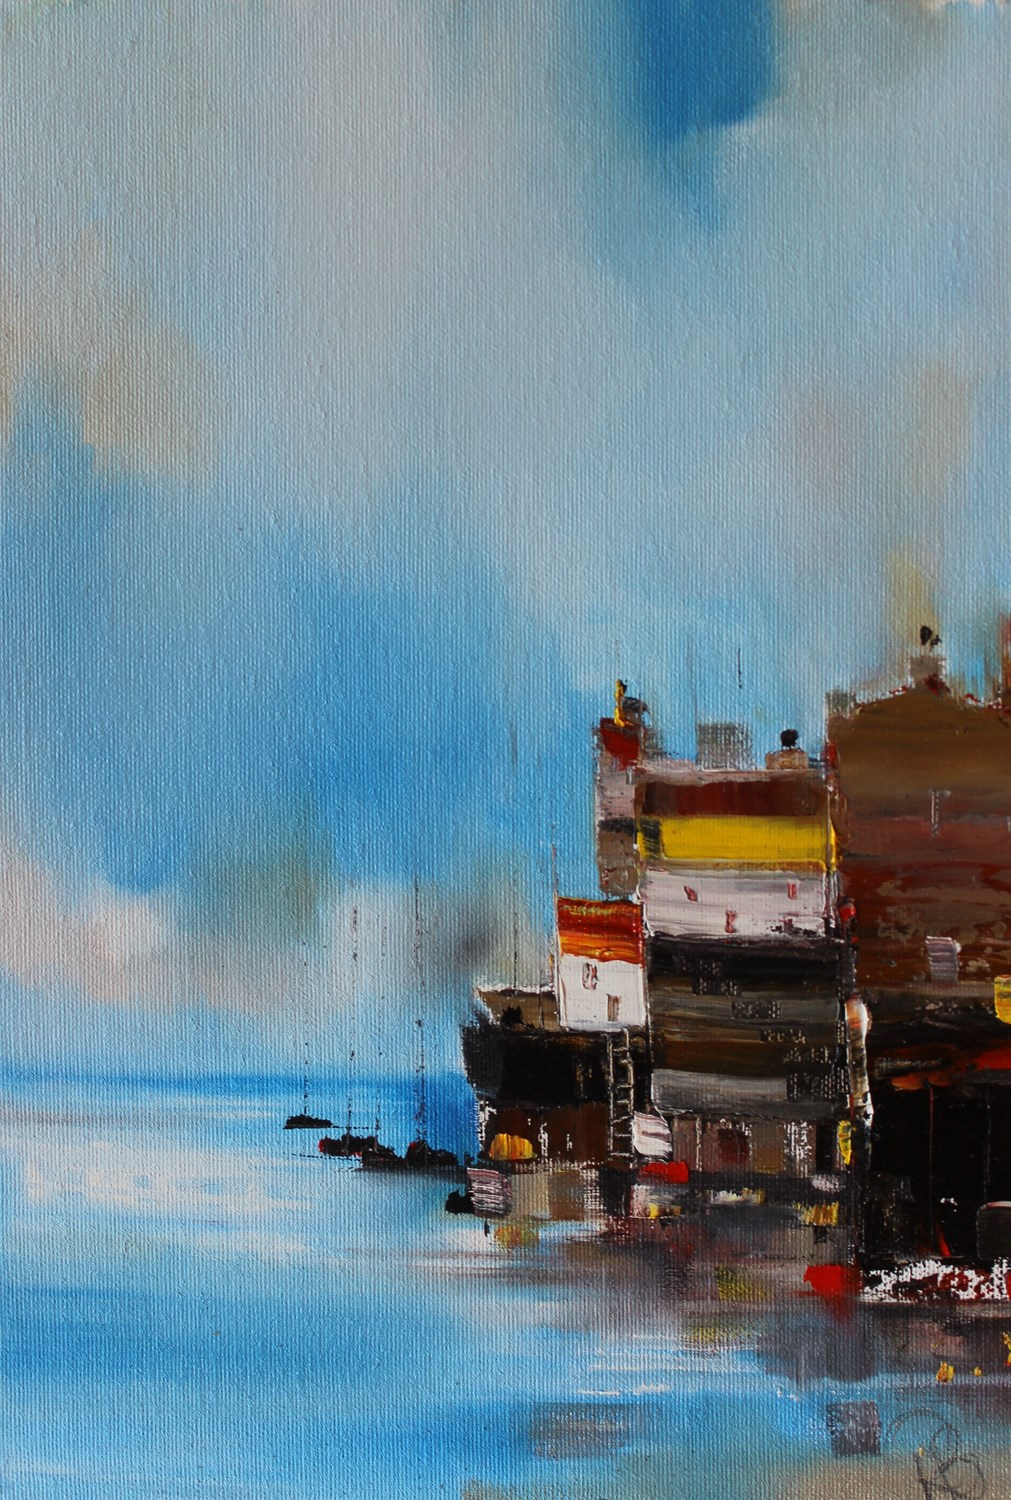 'Home by the Sea' by artist Rosanne Barr